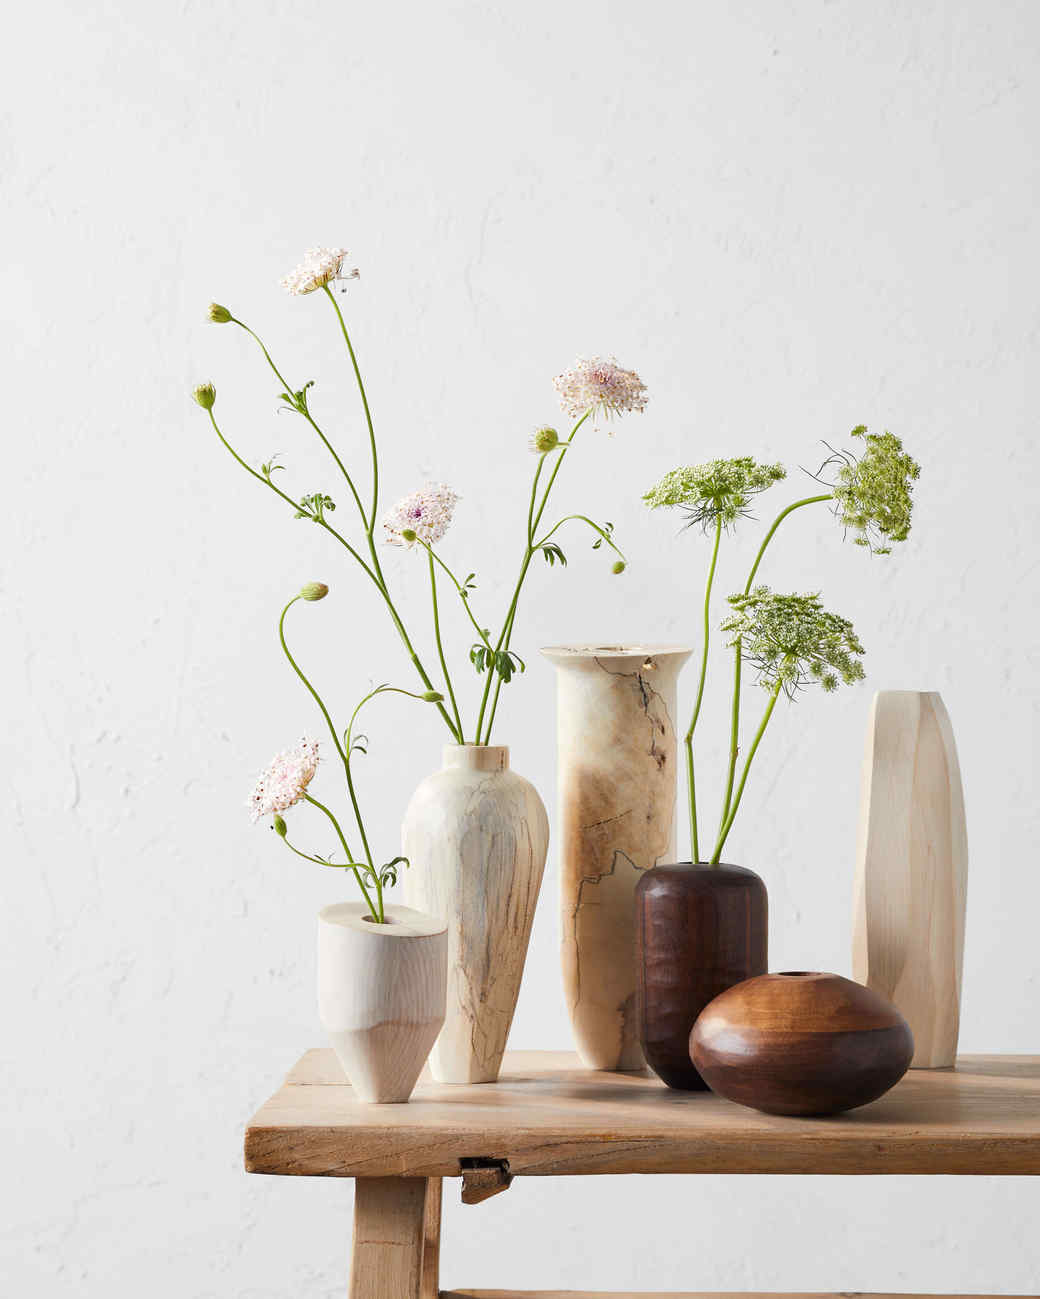 vases from Two Tree Studios